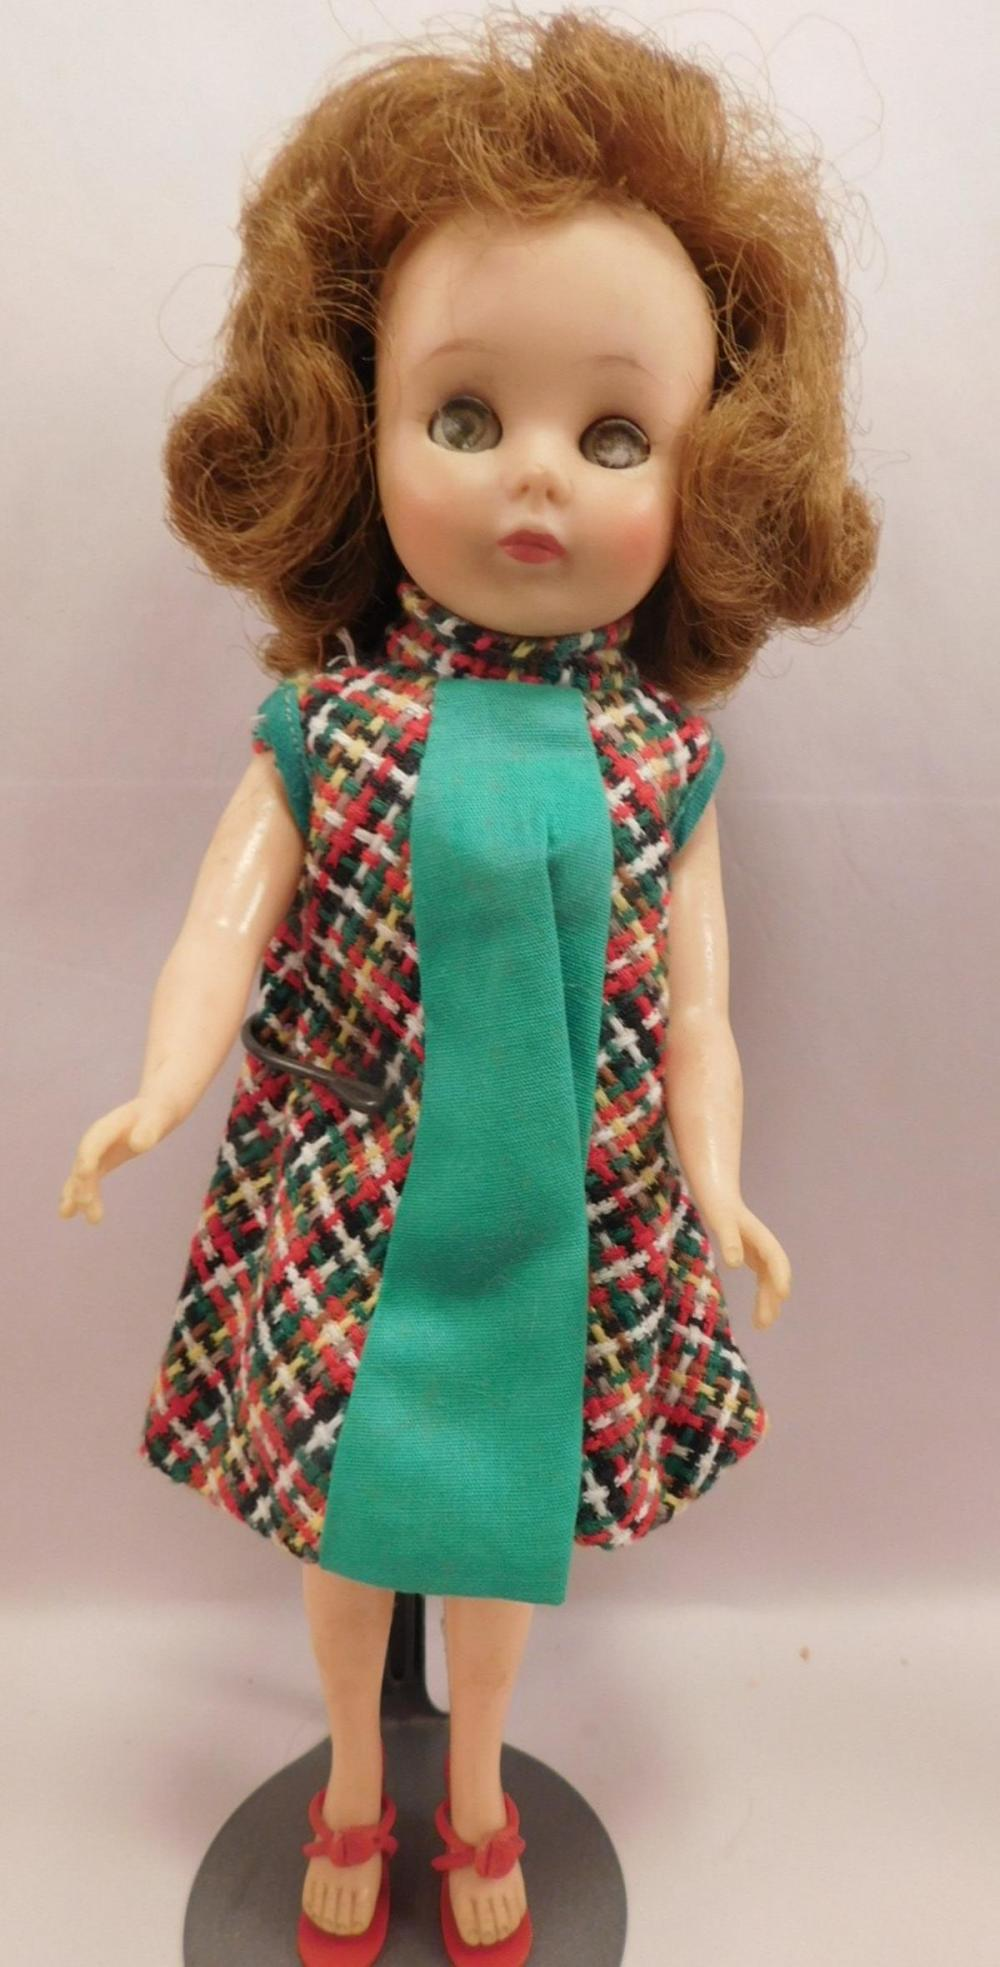 MCCALL 12 INCH DOLL VINTAGE ANTIQUE